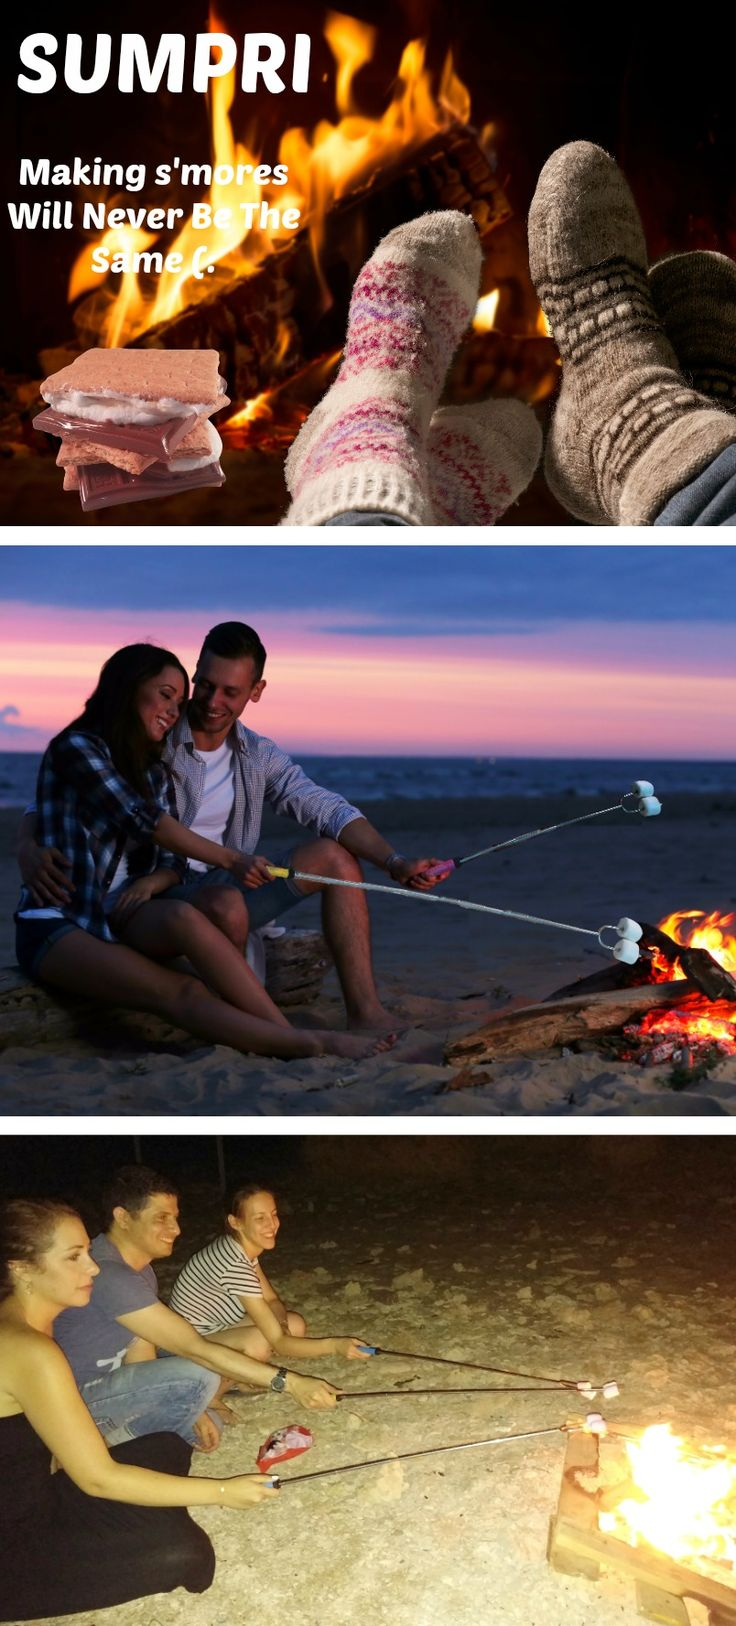 "SUMPRI Barbeqa Marshmallow Roasting Sticks Telescoping Marshmallow Jungle Stix Extra Long 34"" Set of 6 Campfire Forks Cooking Skewers for Smores, Hotdogs, Camping Cookware, Backpacking Gear, Bbq Grill, Fireplace Tools, Fire Pit Accessories This set of 6 forks is made by #sumpri #marshmallow #sticks #marshmallowroastingsticks #smoressticks #campfiresticks #smores"